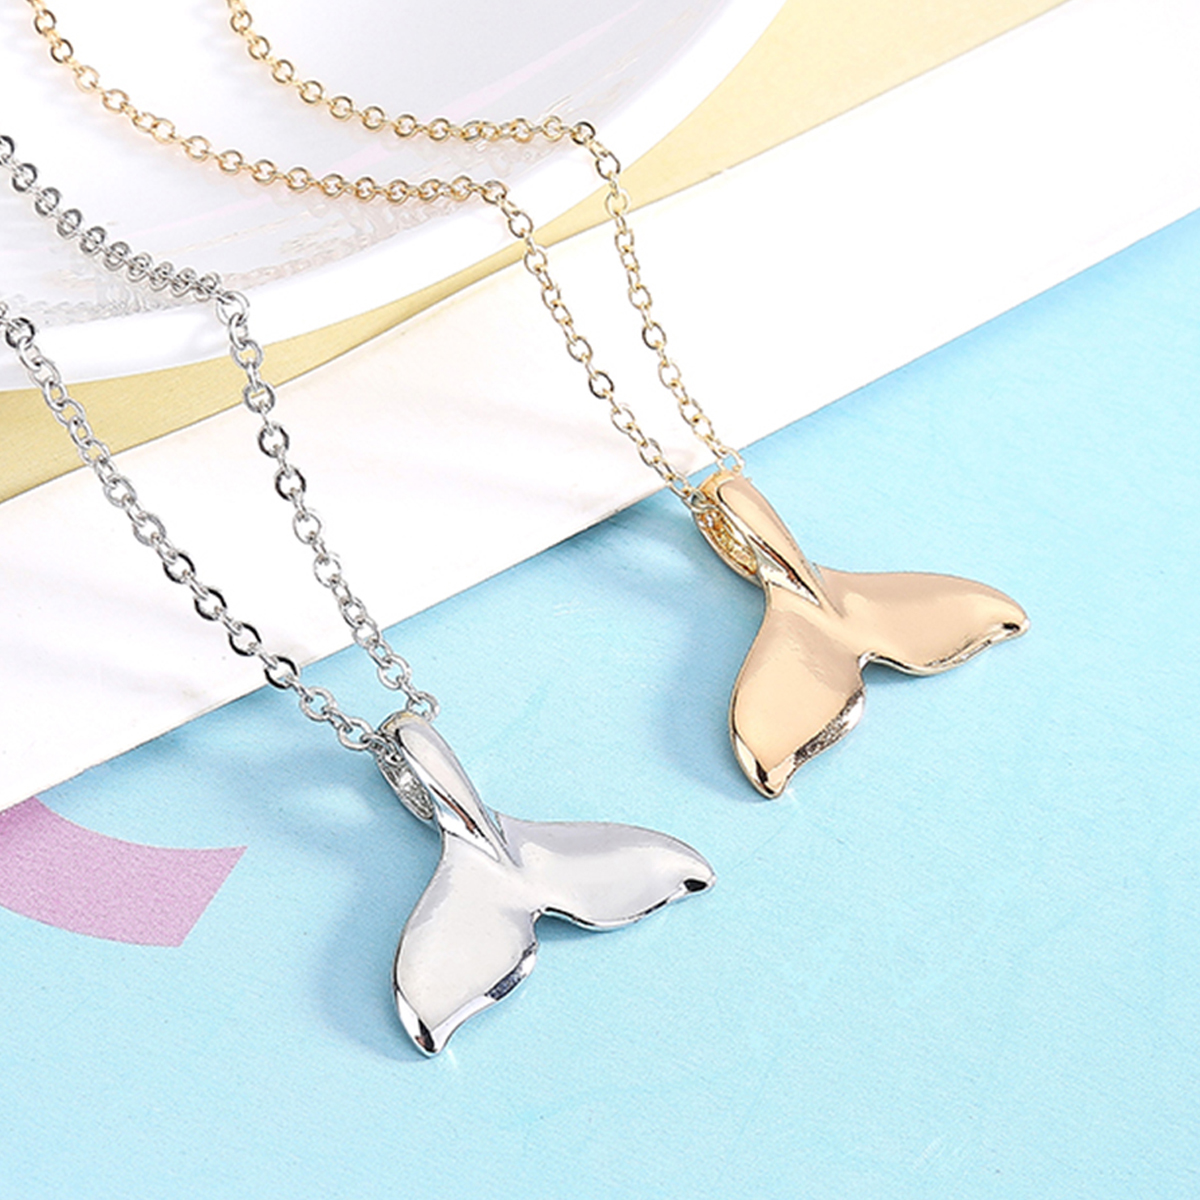 Charms Rose Gold/Silver Color Simple Chain Cute Whale Fishtail Dolphin Tail Fashion Pendant Necklace Womens' Animal Chic Jewelry